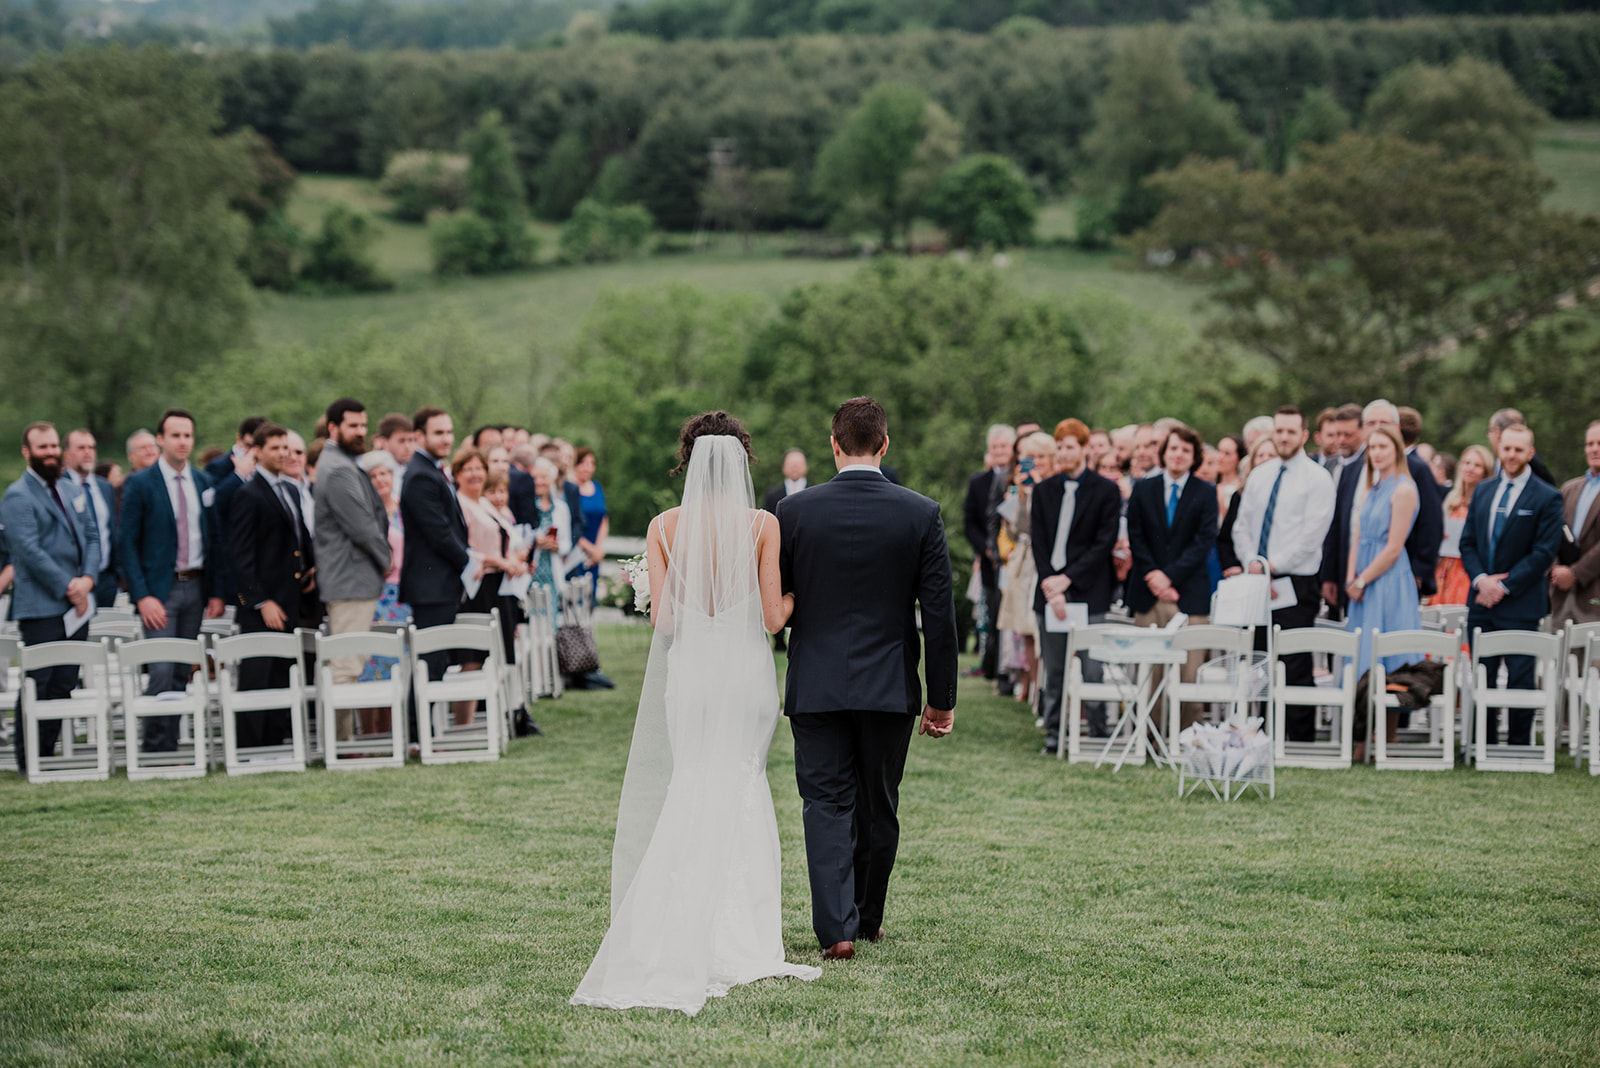 A bride is escorted by her brother to her outdoor wedding ceremony at Blue Hill Farm in Waterford, VA.